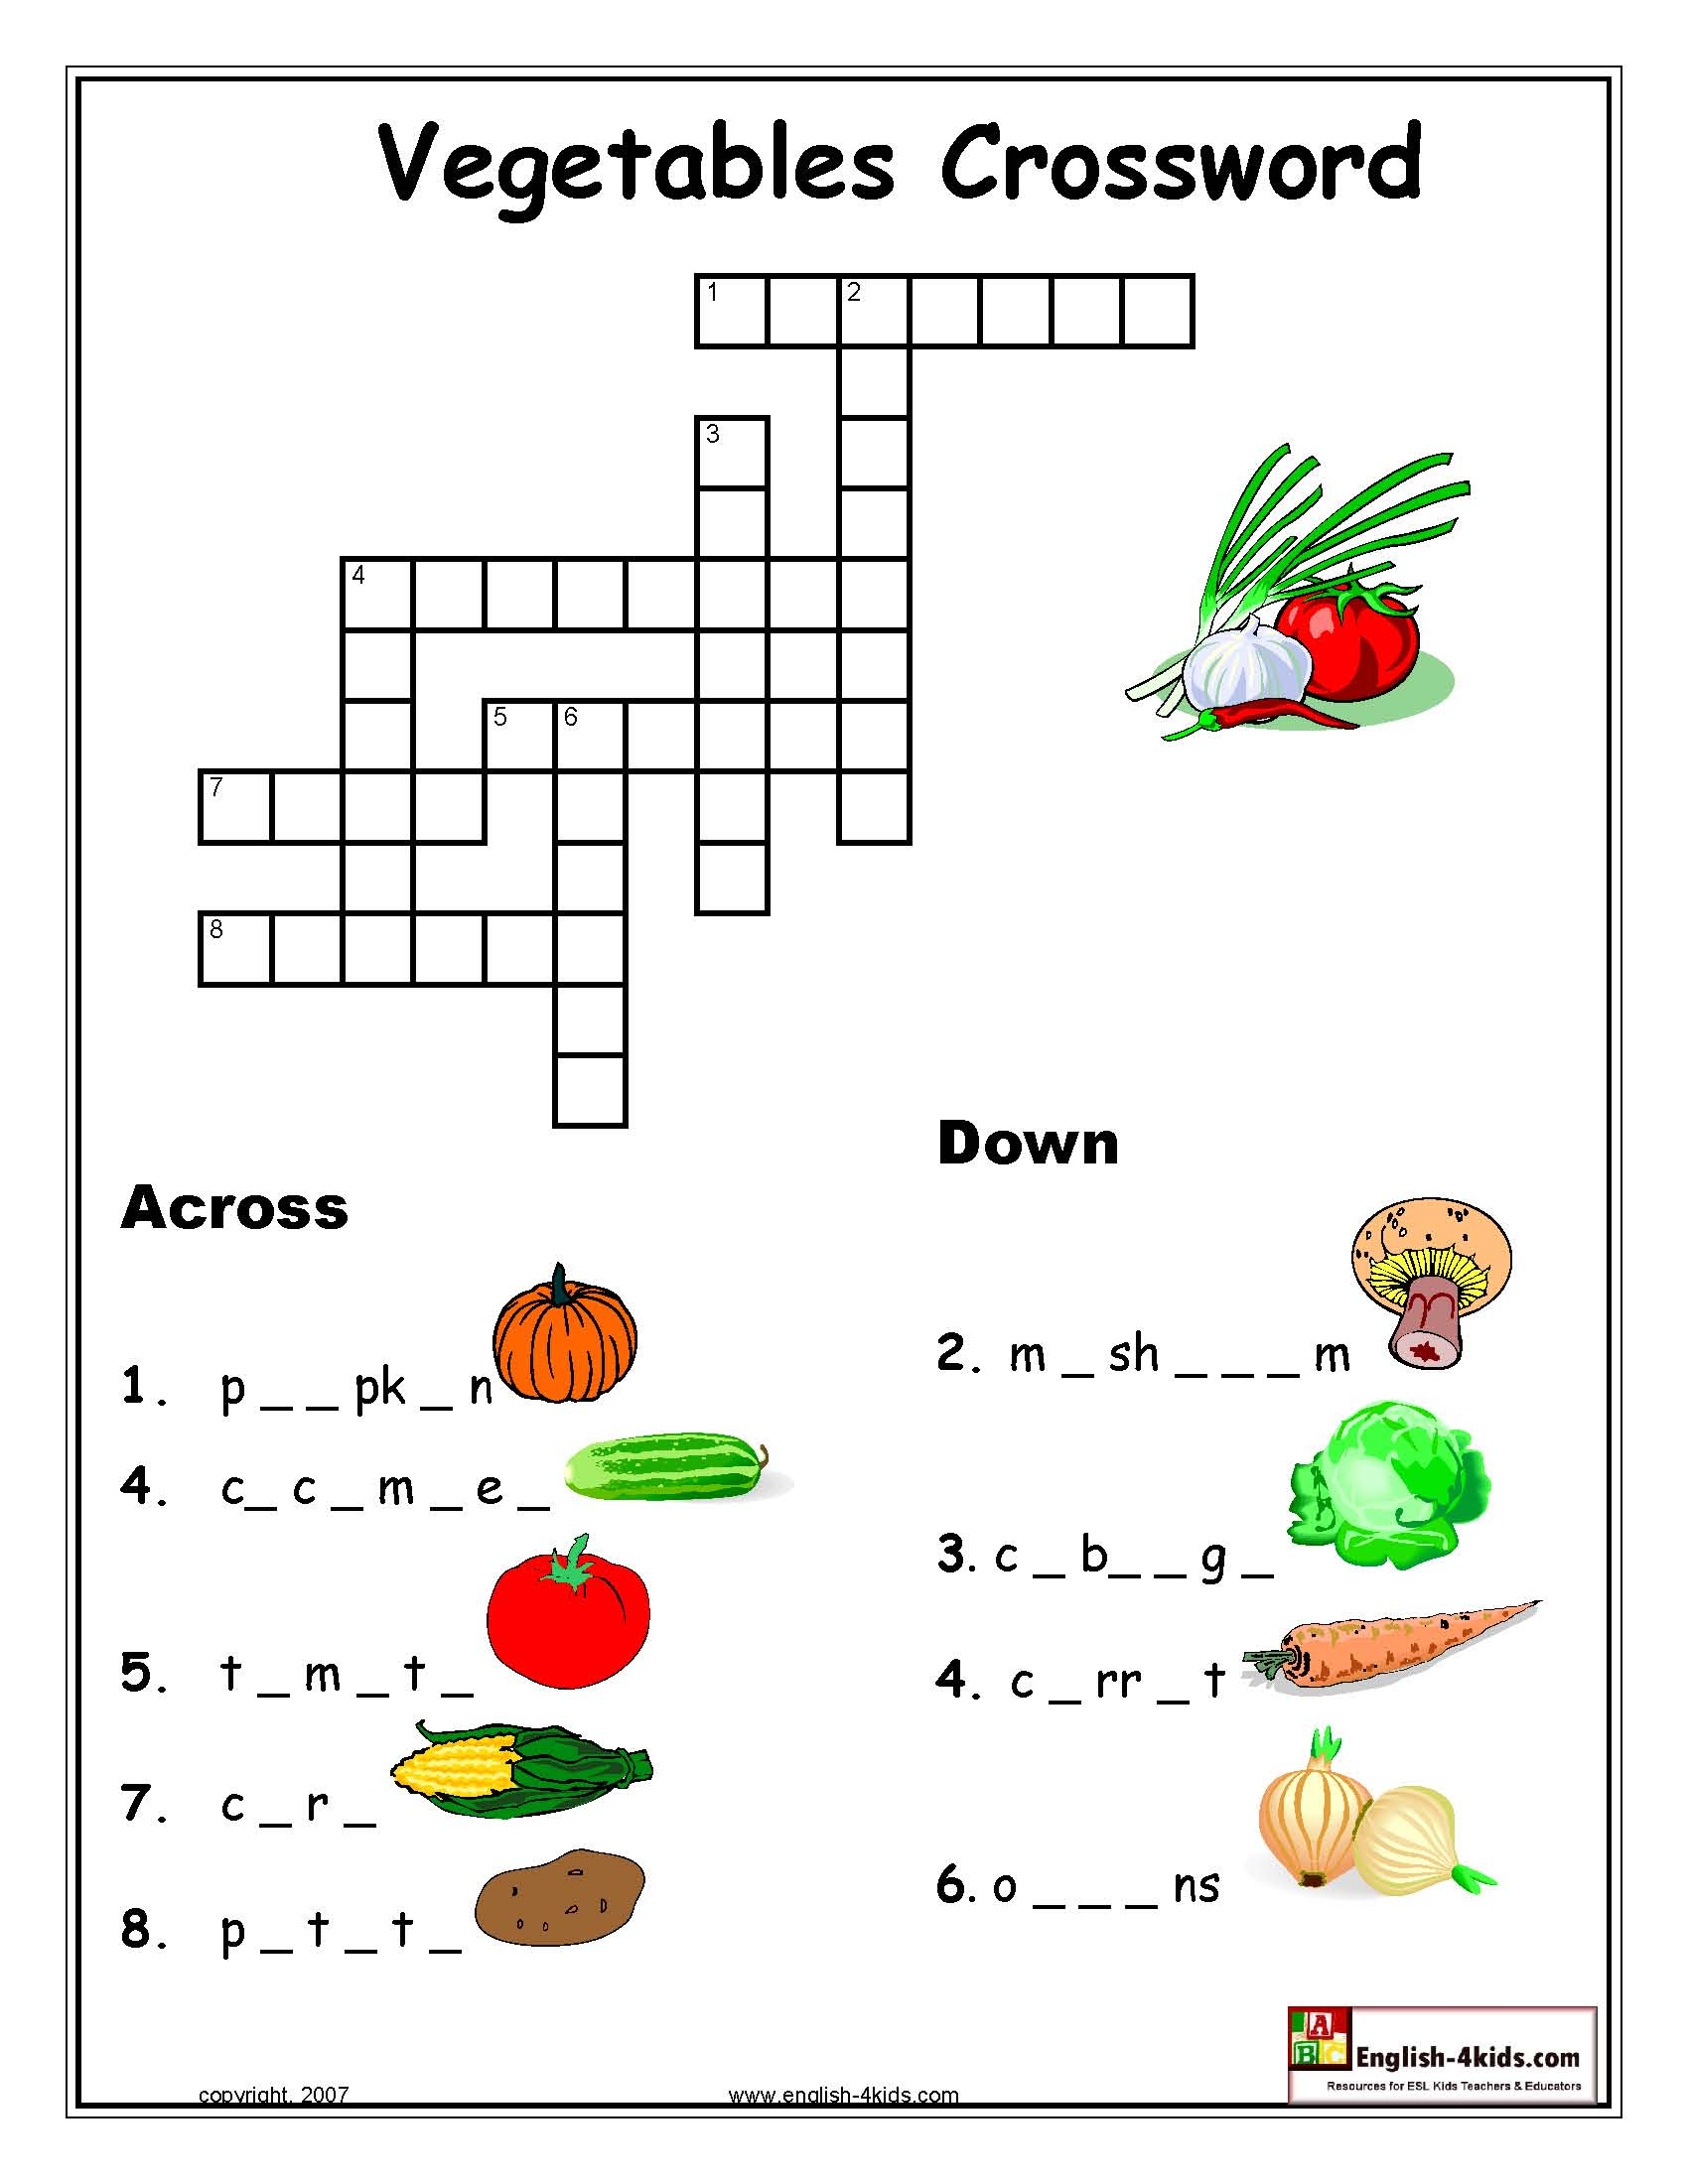 Vegetable Crossword